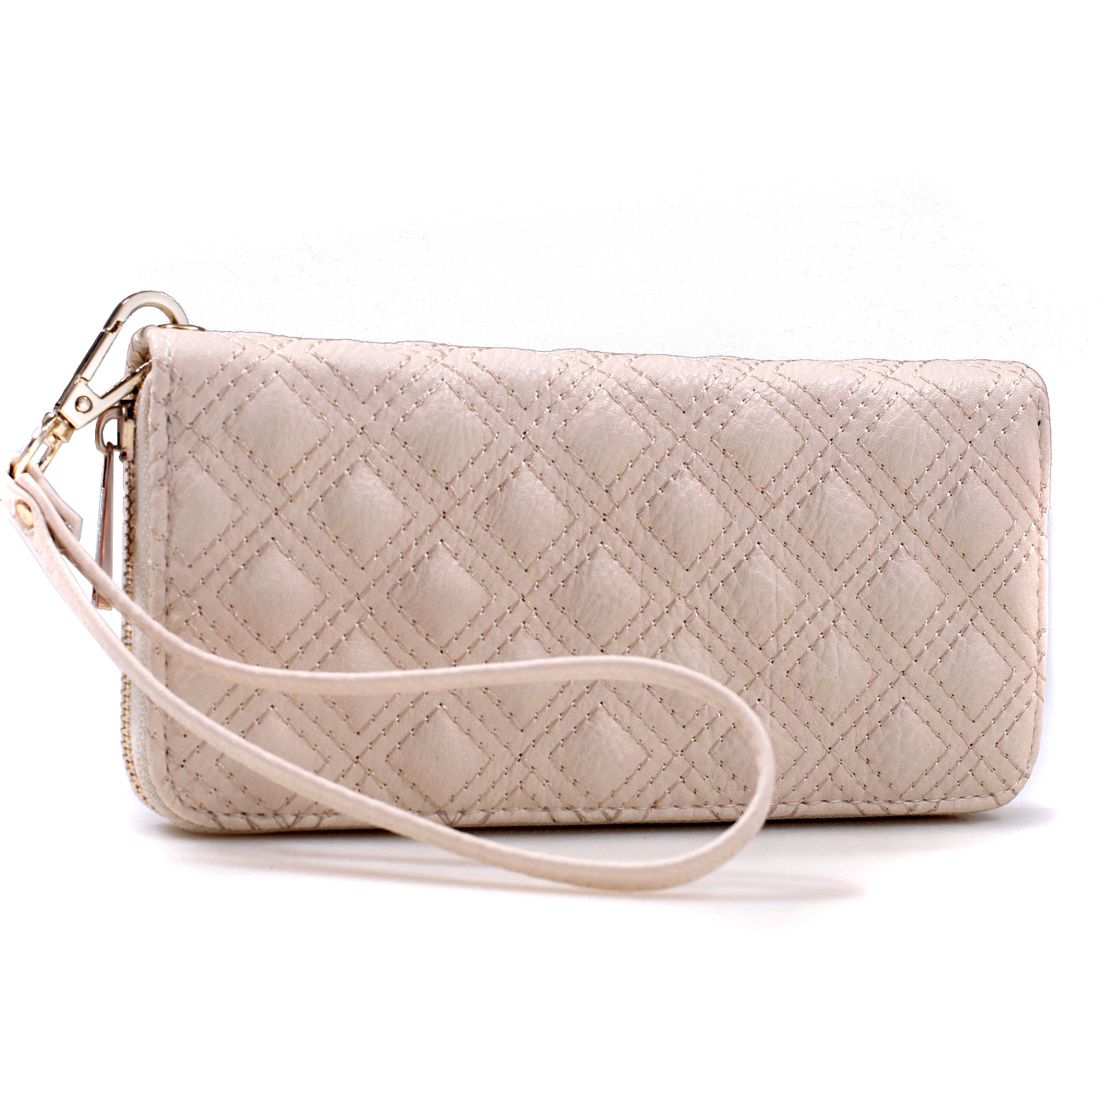 Quilted Zip-Around Wallet With Detachable Wristlet Strap